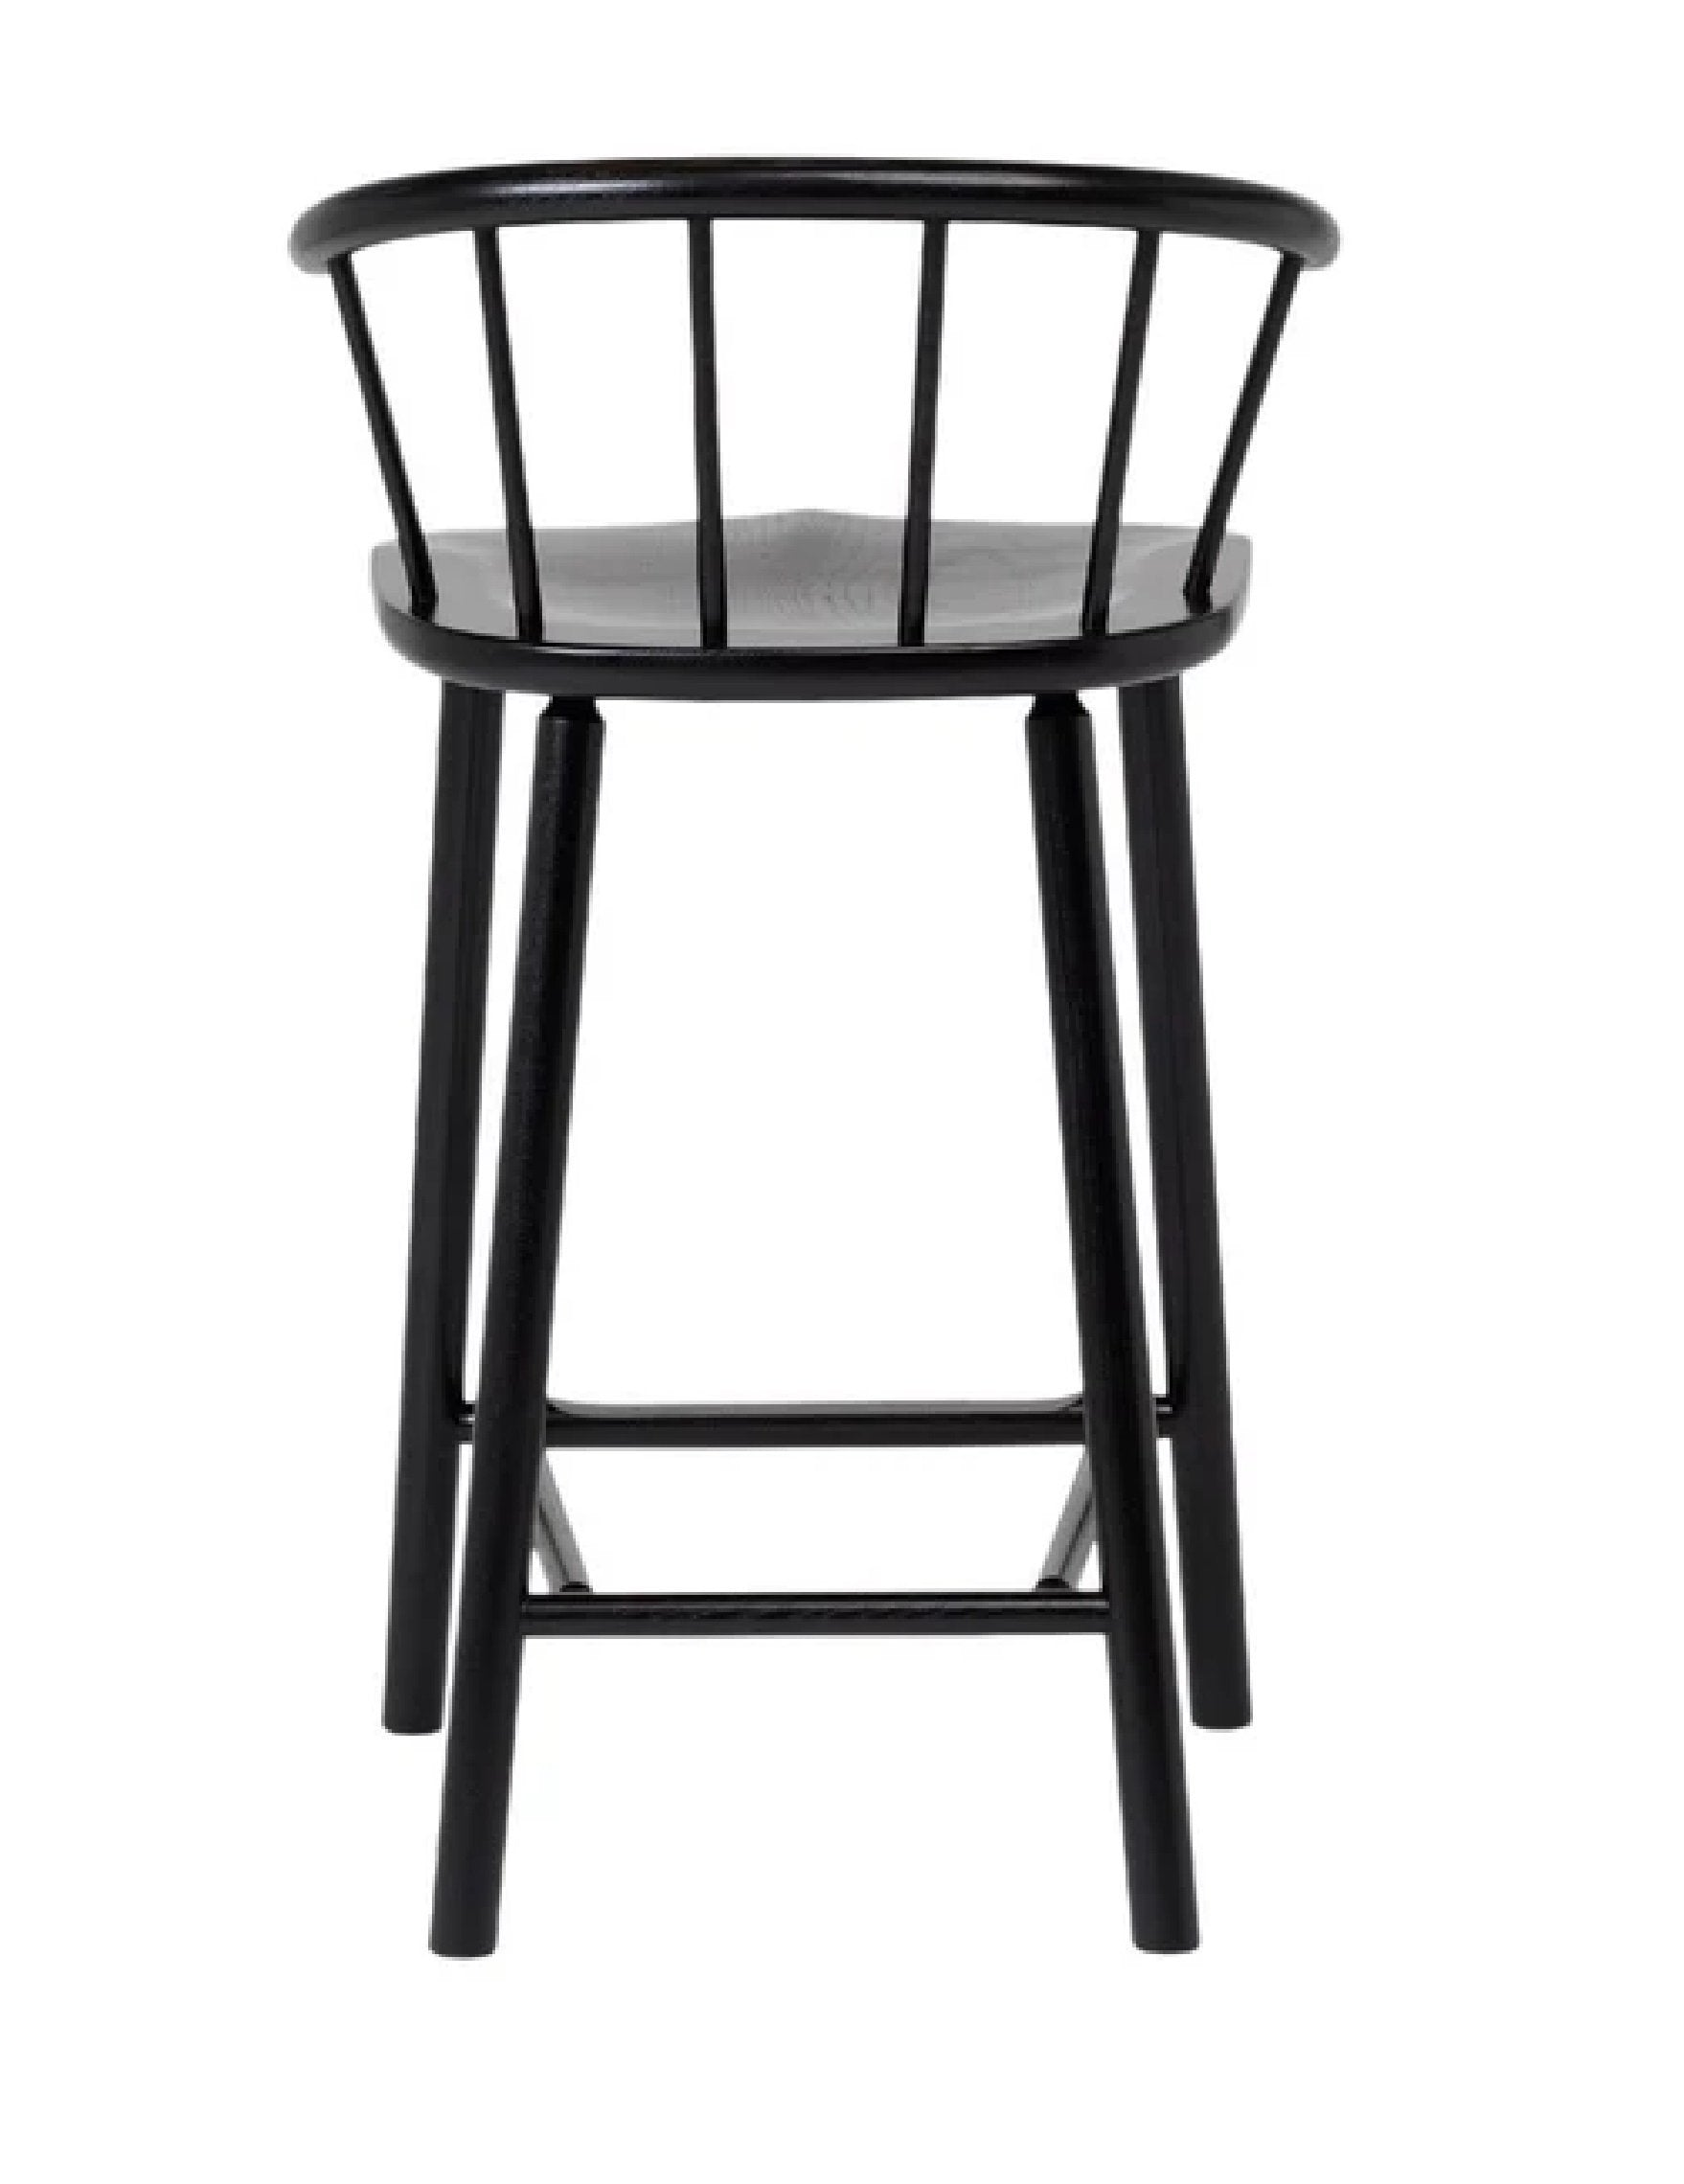 "Another Country Hardy Bar Stool - w/ Back Ash 19.4"" W x 18.4"" D x 35.2"" H 